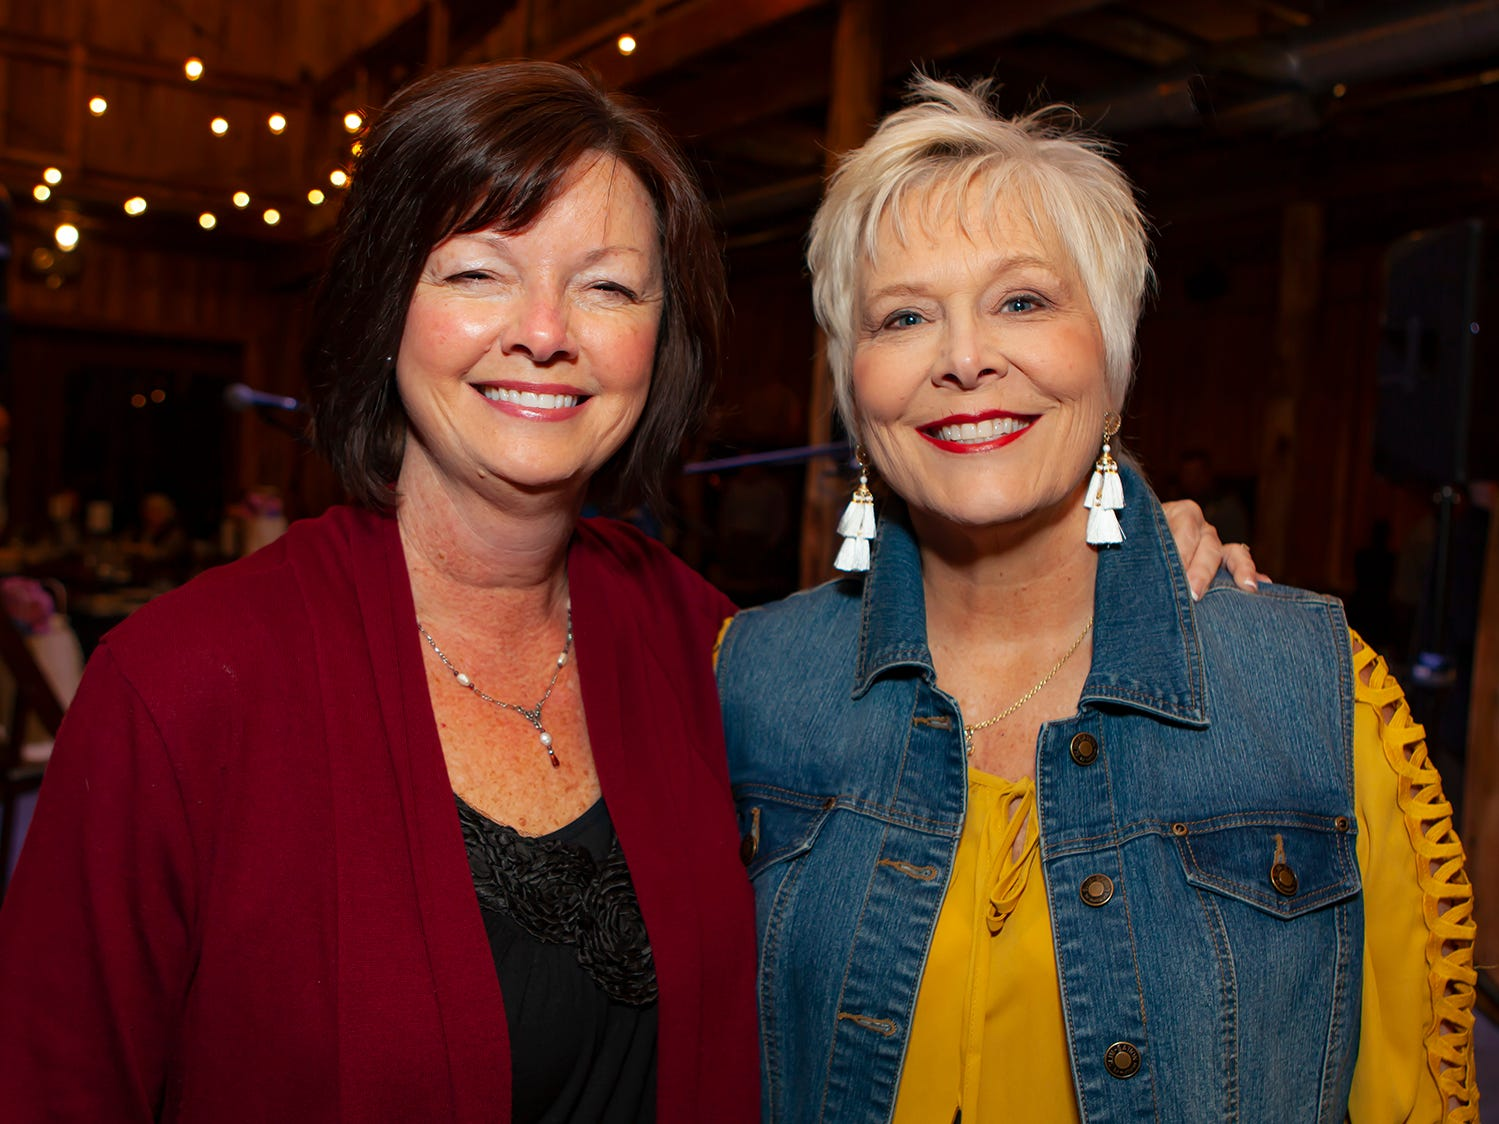 Barbara Long and Cheri Jobe at the second night of Bluebird in the Boro, held March 4-6, 2019. A benefit for Alive Hospice, the event was held at The Grove at Williamson Place in Murfreesboro.